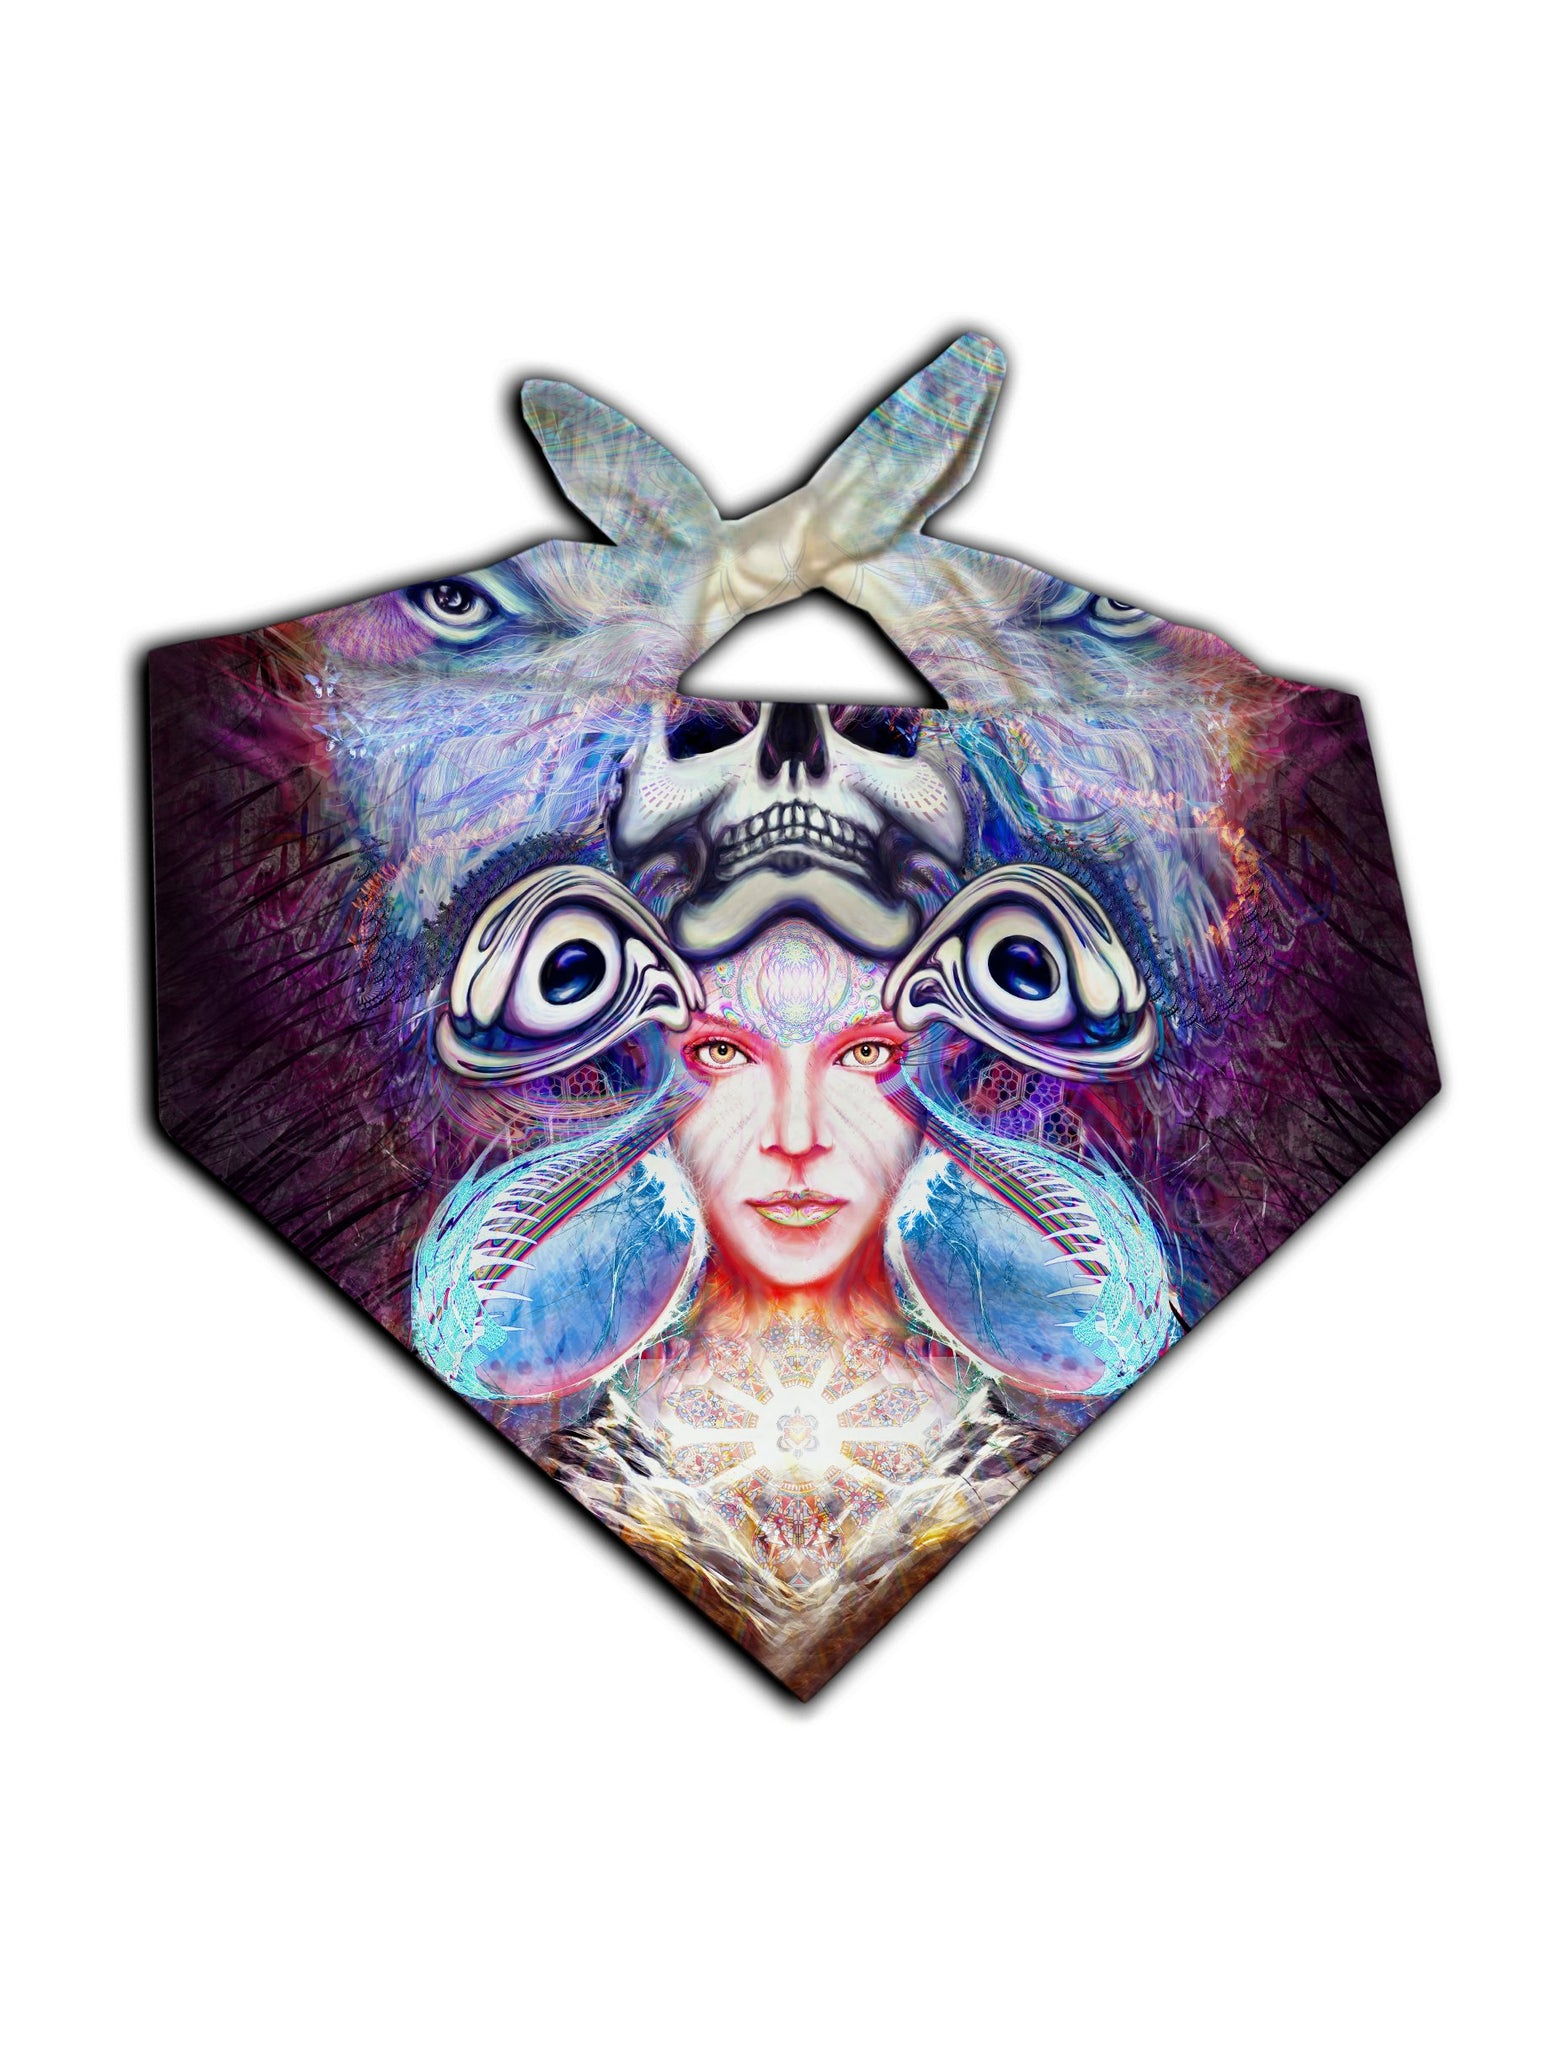 All over print blue & purple visionary art bandana by GratefullyDyed Apparel tied neck scarf view.